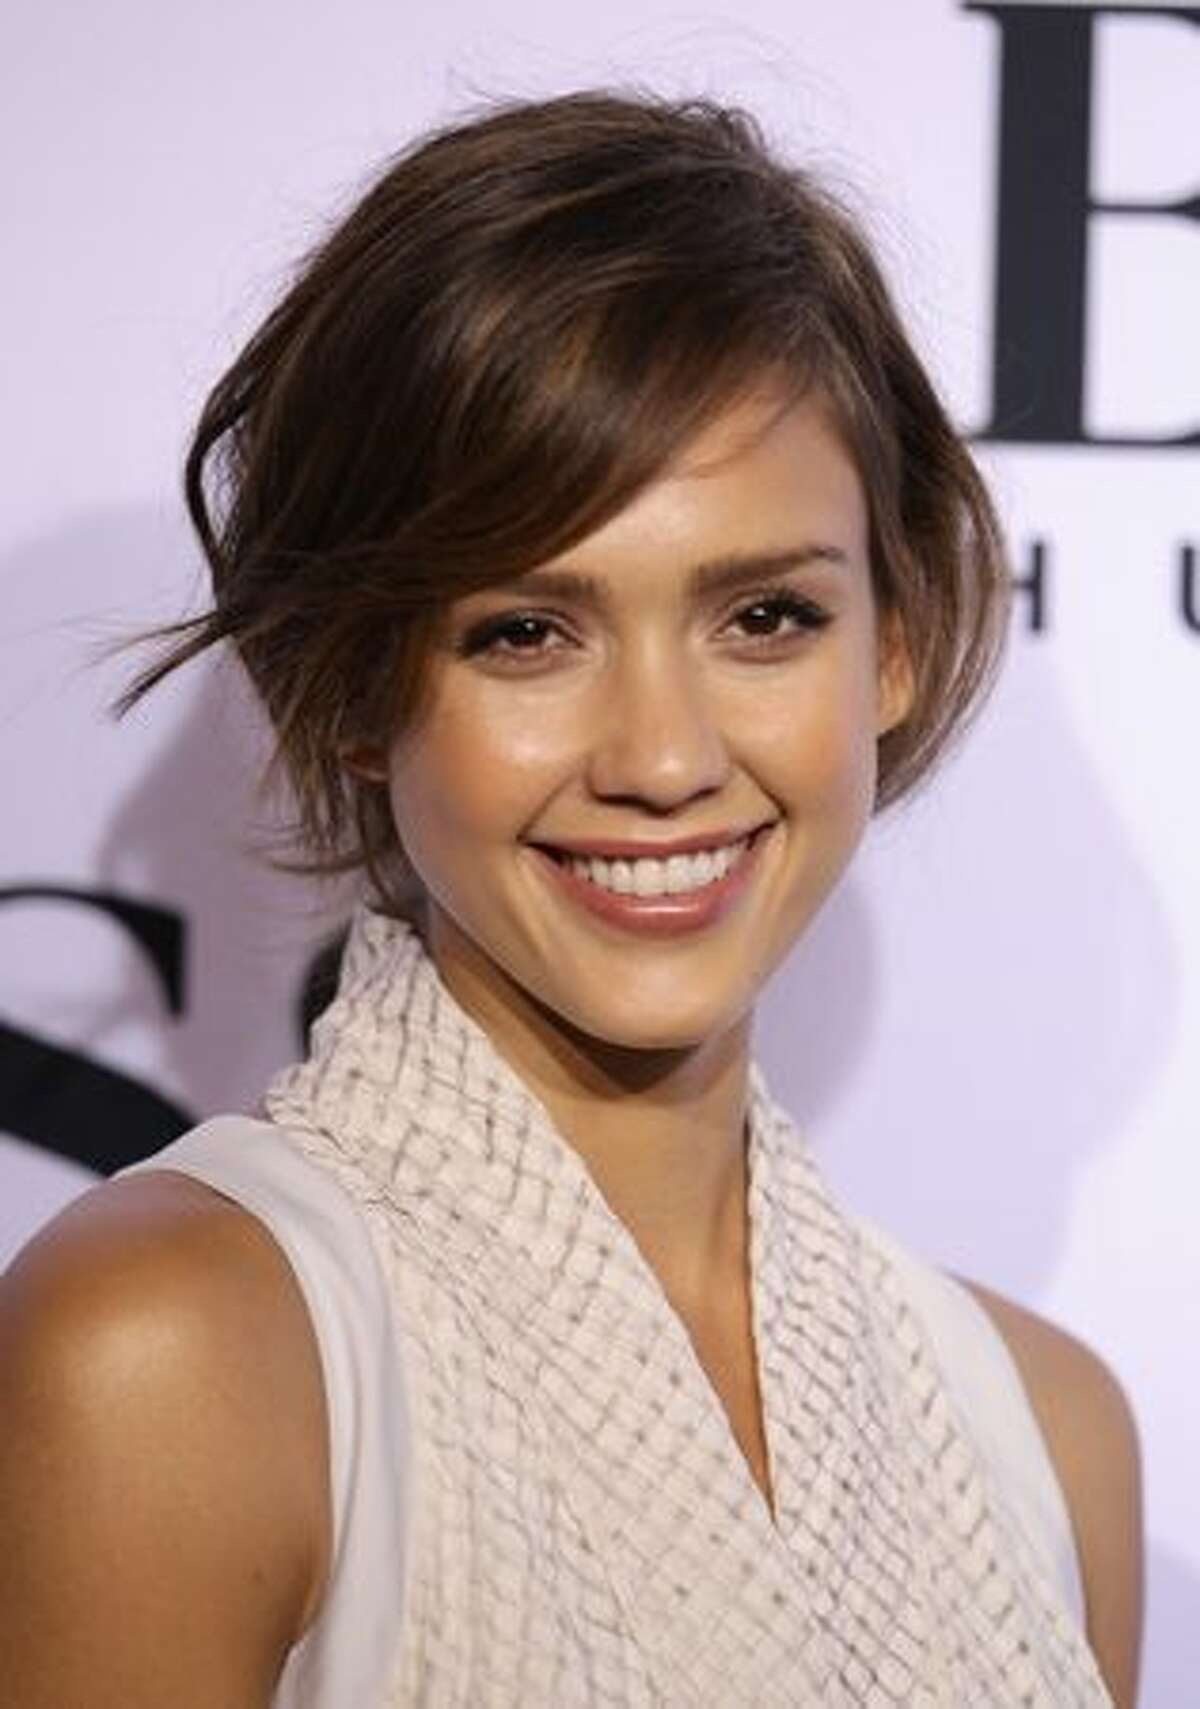 Actress Jessica Alba arrives at the Boss Black Show during the Mercedes-Benz Fashion Week Spring/Summer 2011.